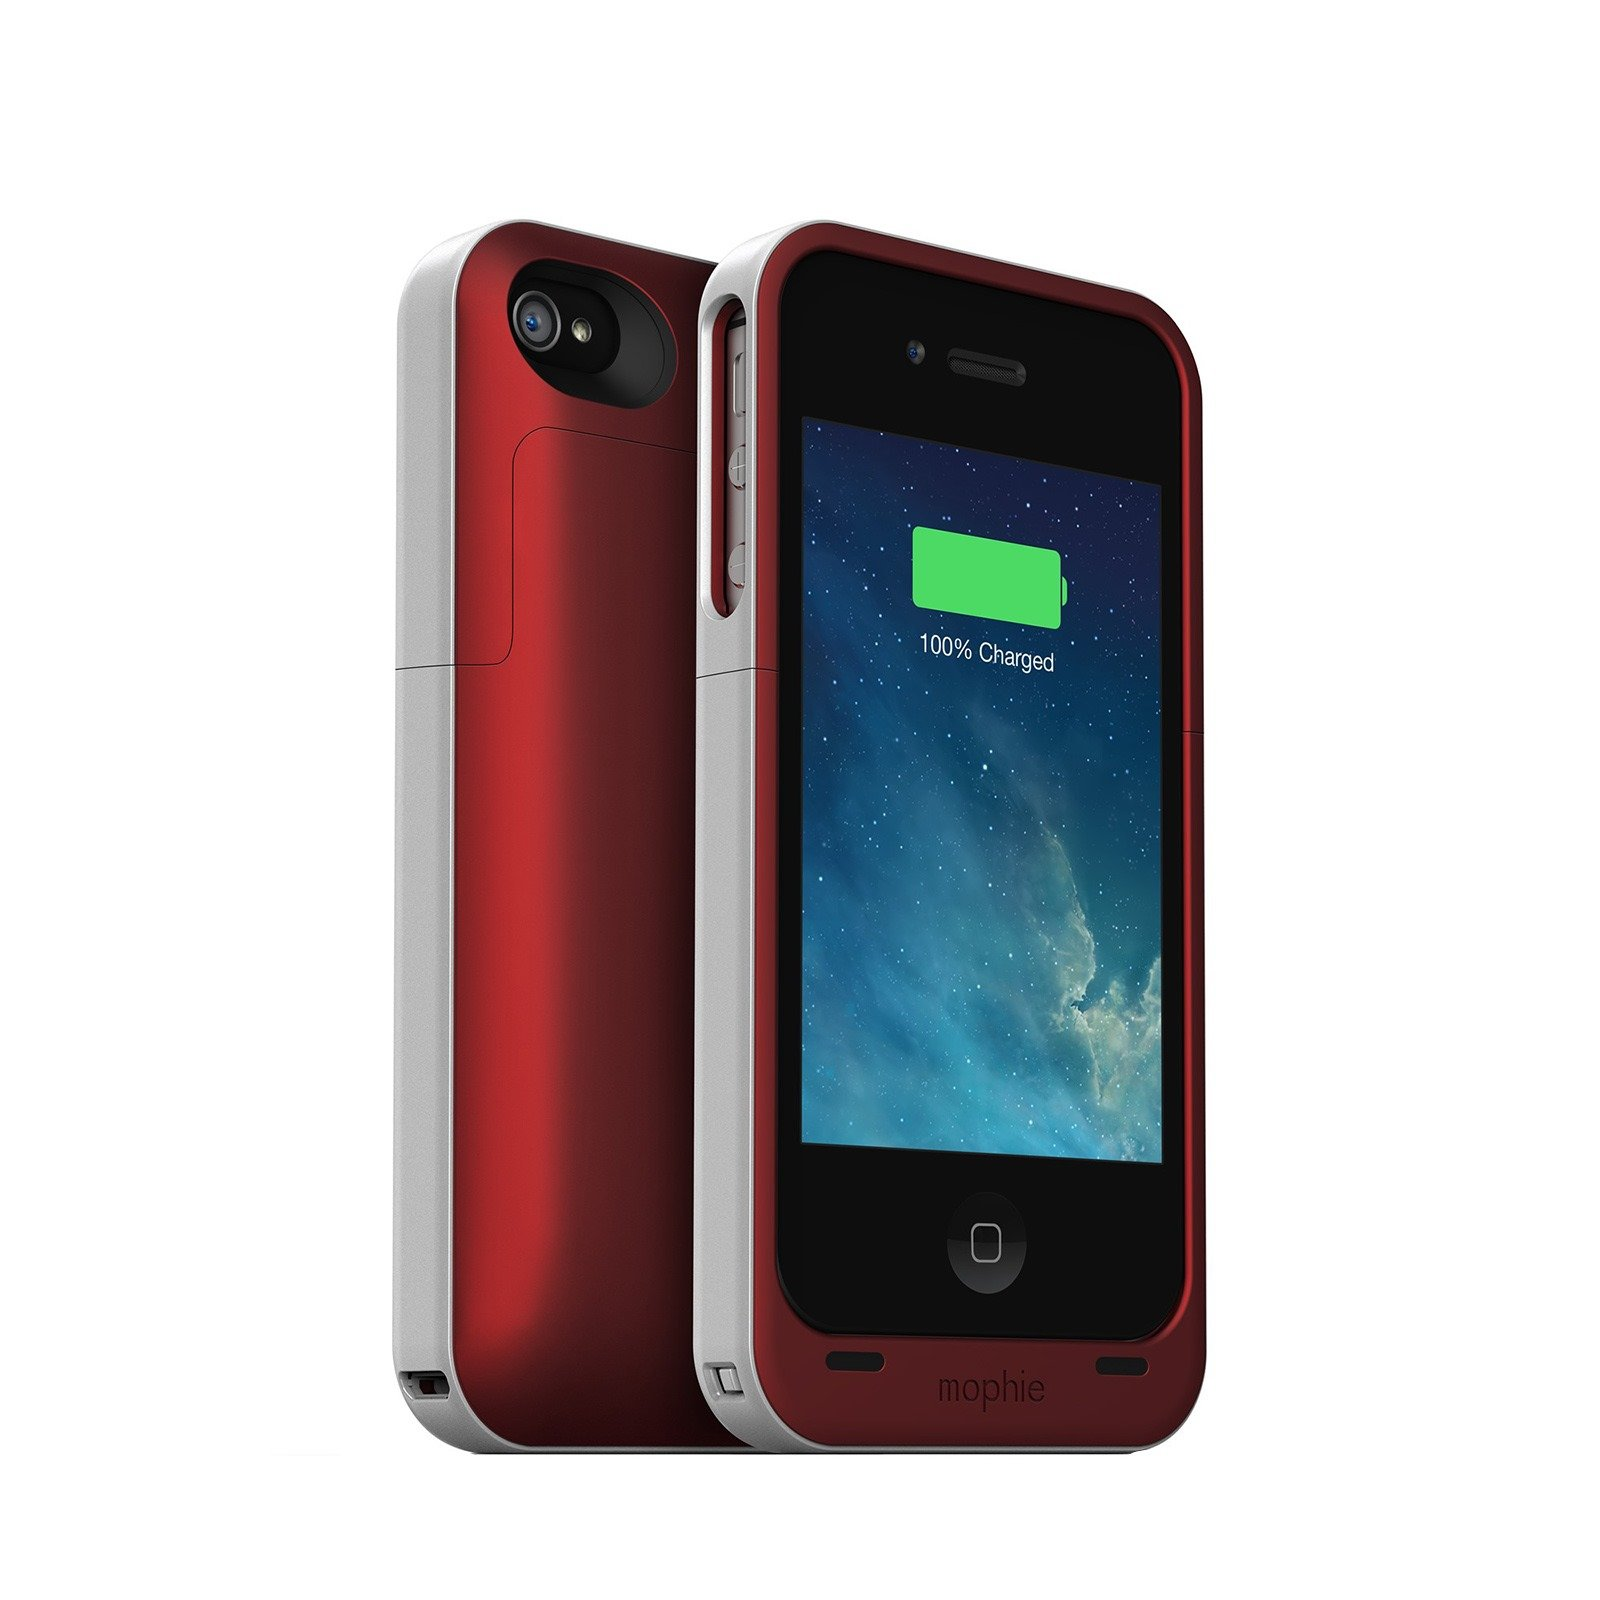 mophie juice pack air battery case for iphone 4 4s red. Black Bedroom Furniture Sets. Home Design Ideas